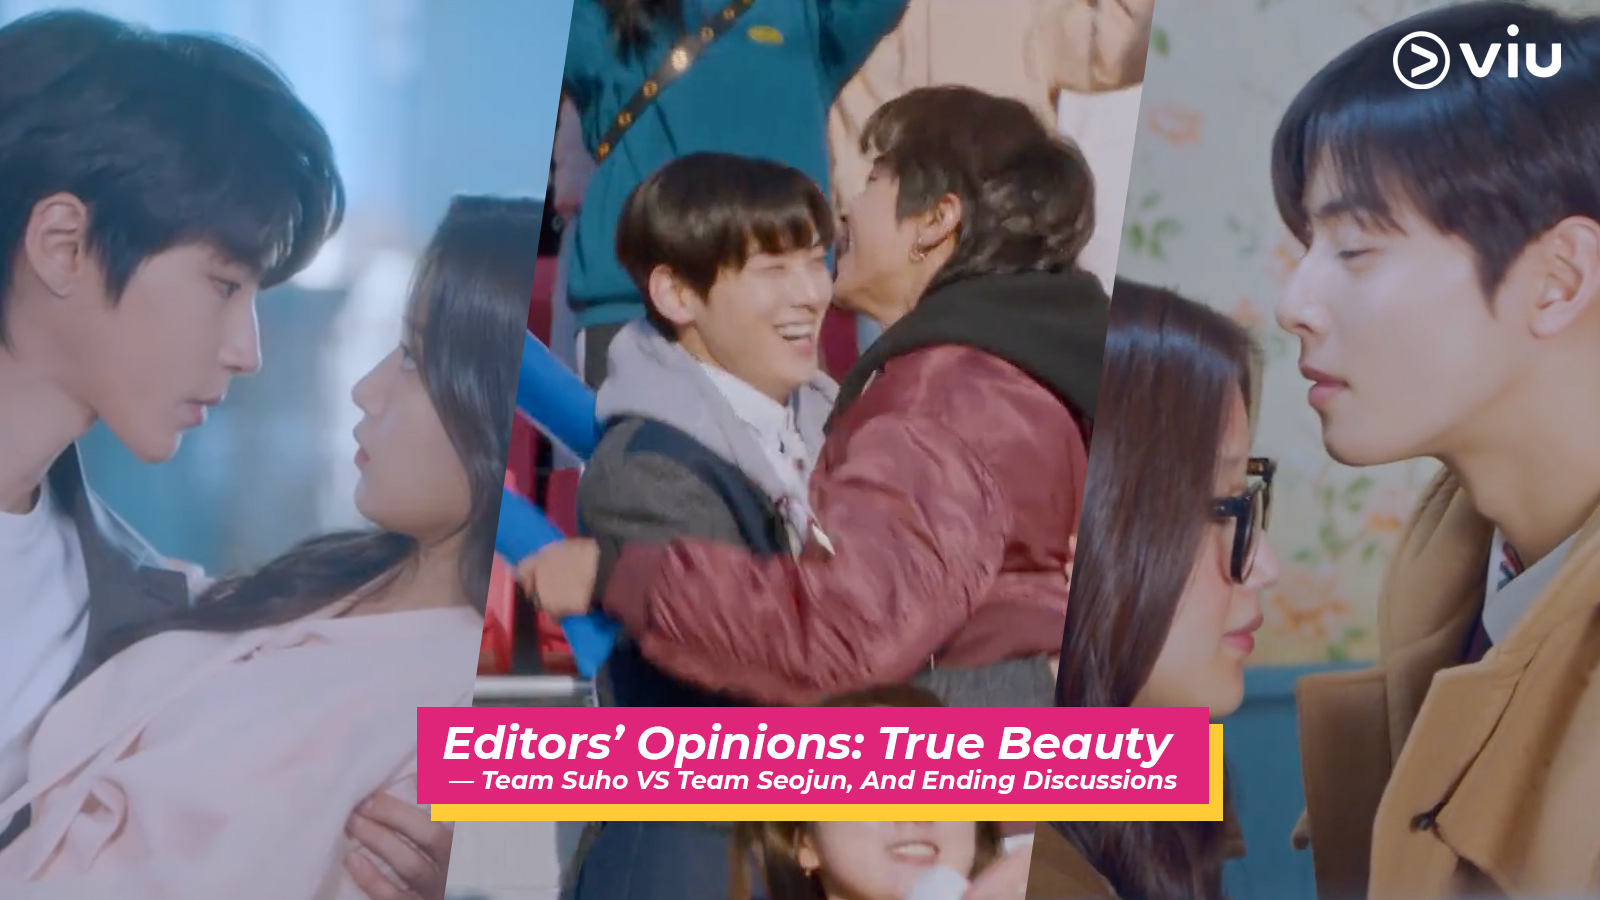 Editors' Opinions: True Beauty — Team Suho VS Team Seojun, And Ending Discussions